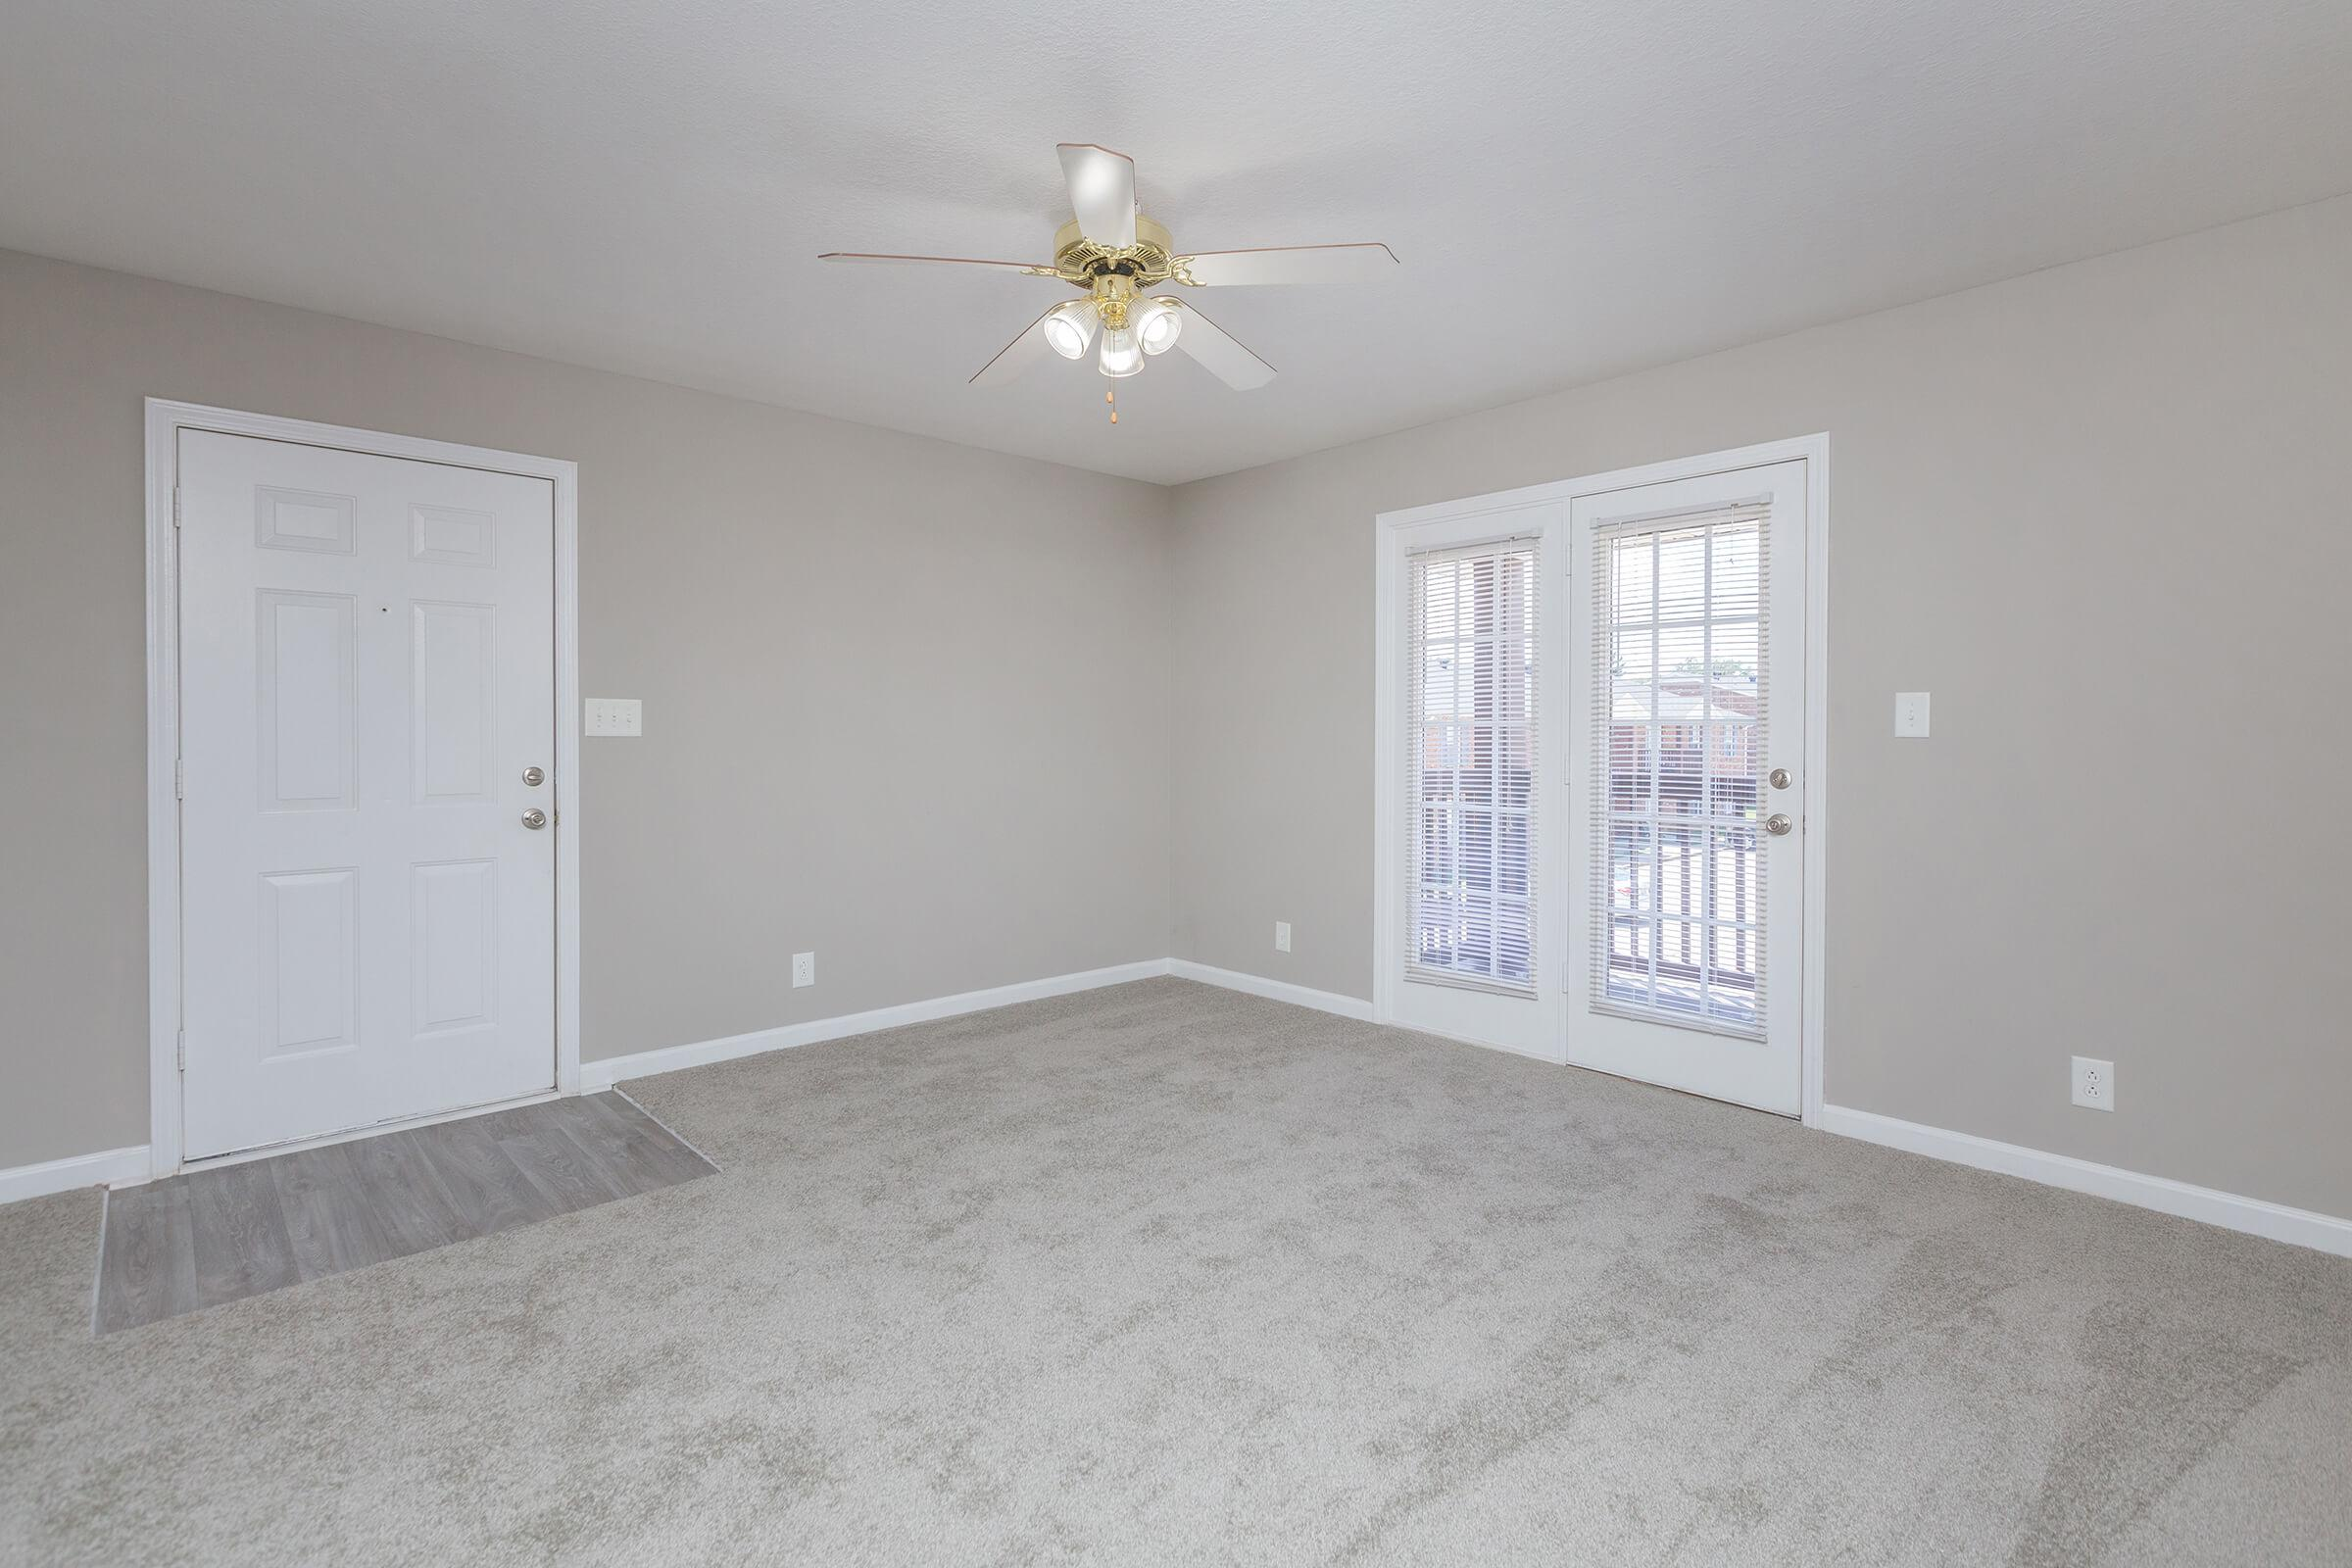 Carpeted Floors at SummerTrees Apartments